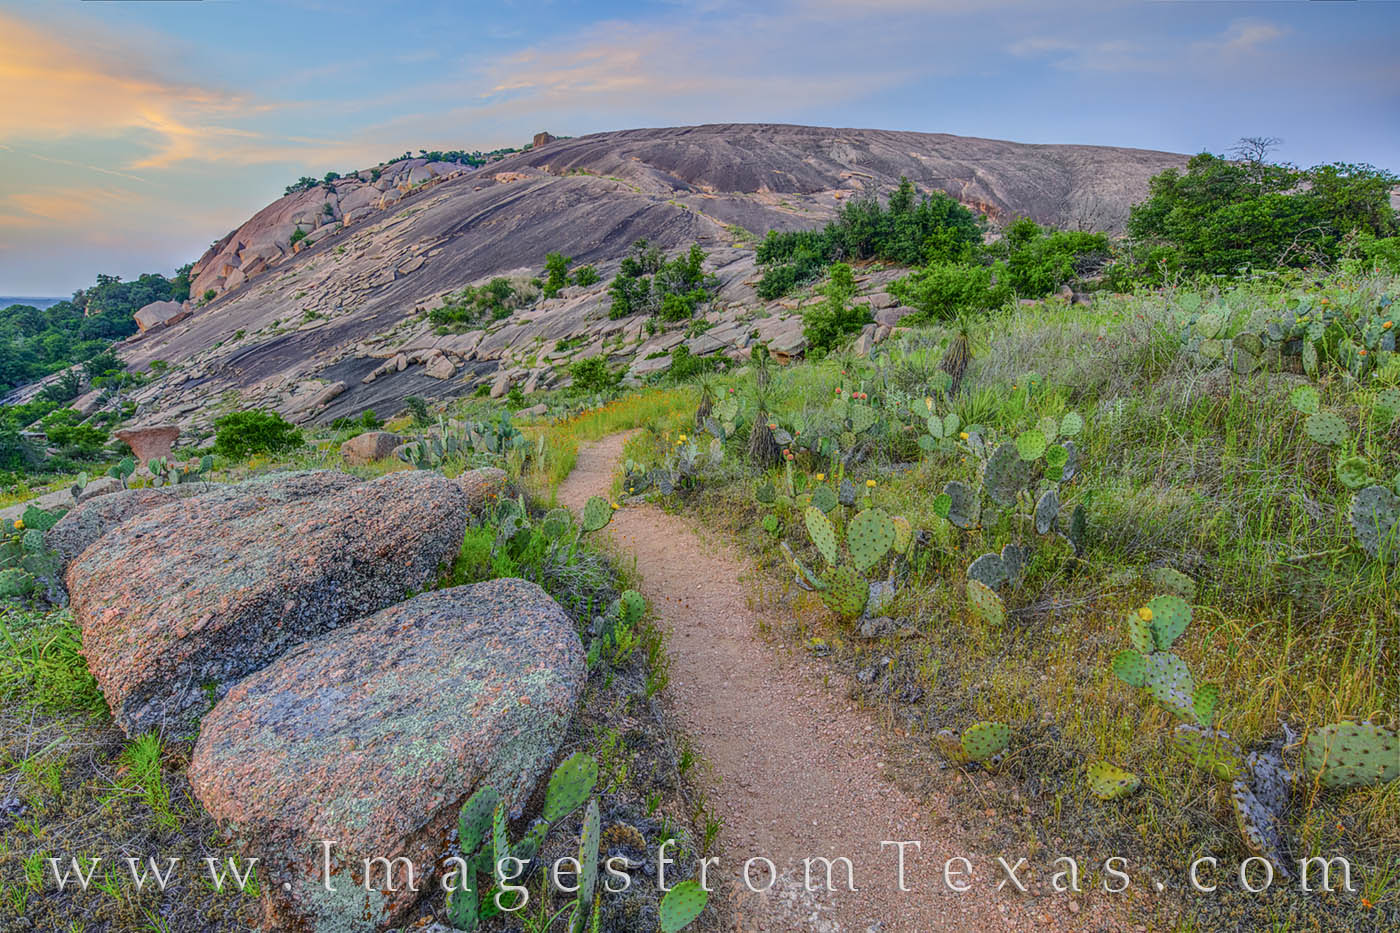 enchanted rock, prickly pear, evening, hiking, trail, blooms, spring, hill country, prints for sale, photo